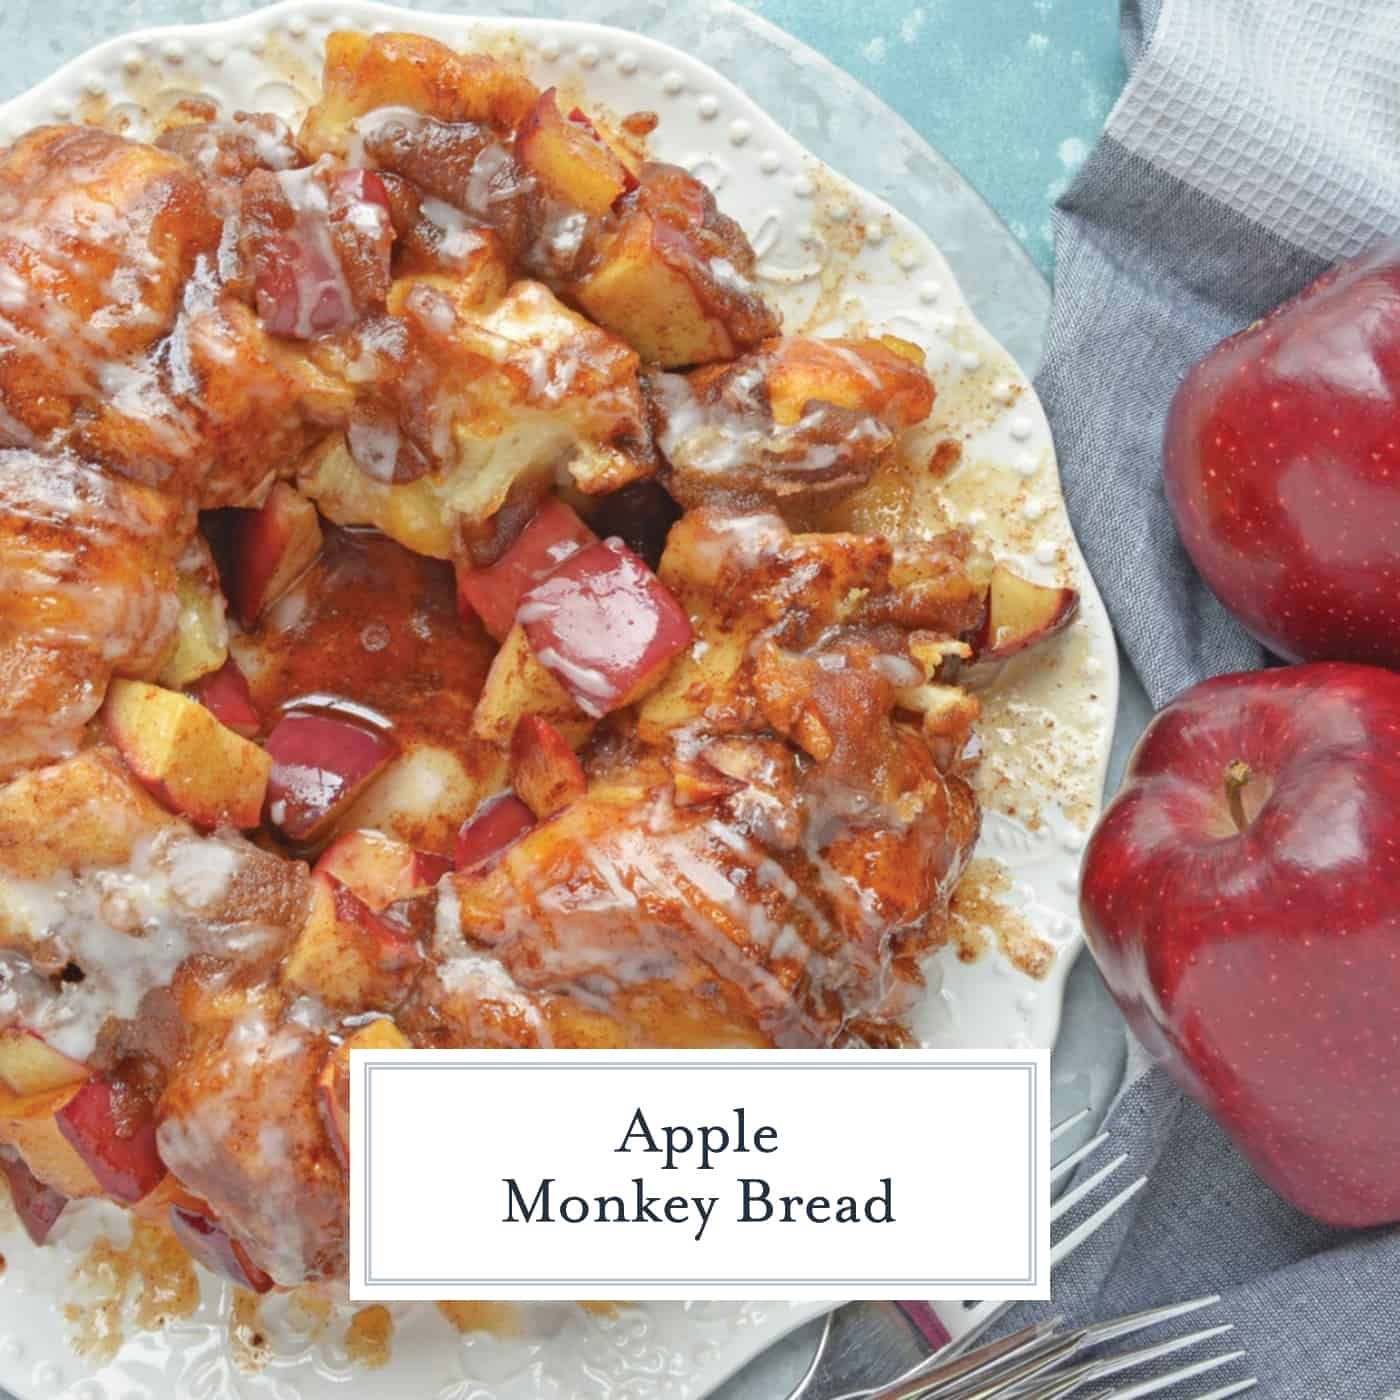 Apple Monkey Bread is an easy monkey bread with canned biscuits and fresh apples. A winning brunch and breakfast recipe for special occasions. #monkeybreadrecipe #easymonkeybread www.savoryexperiments.com